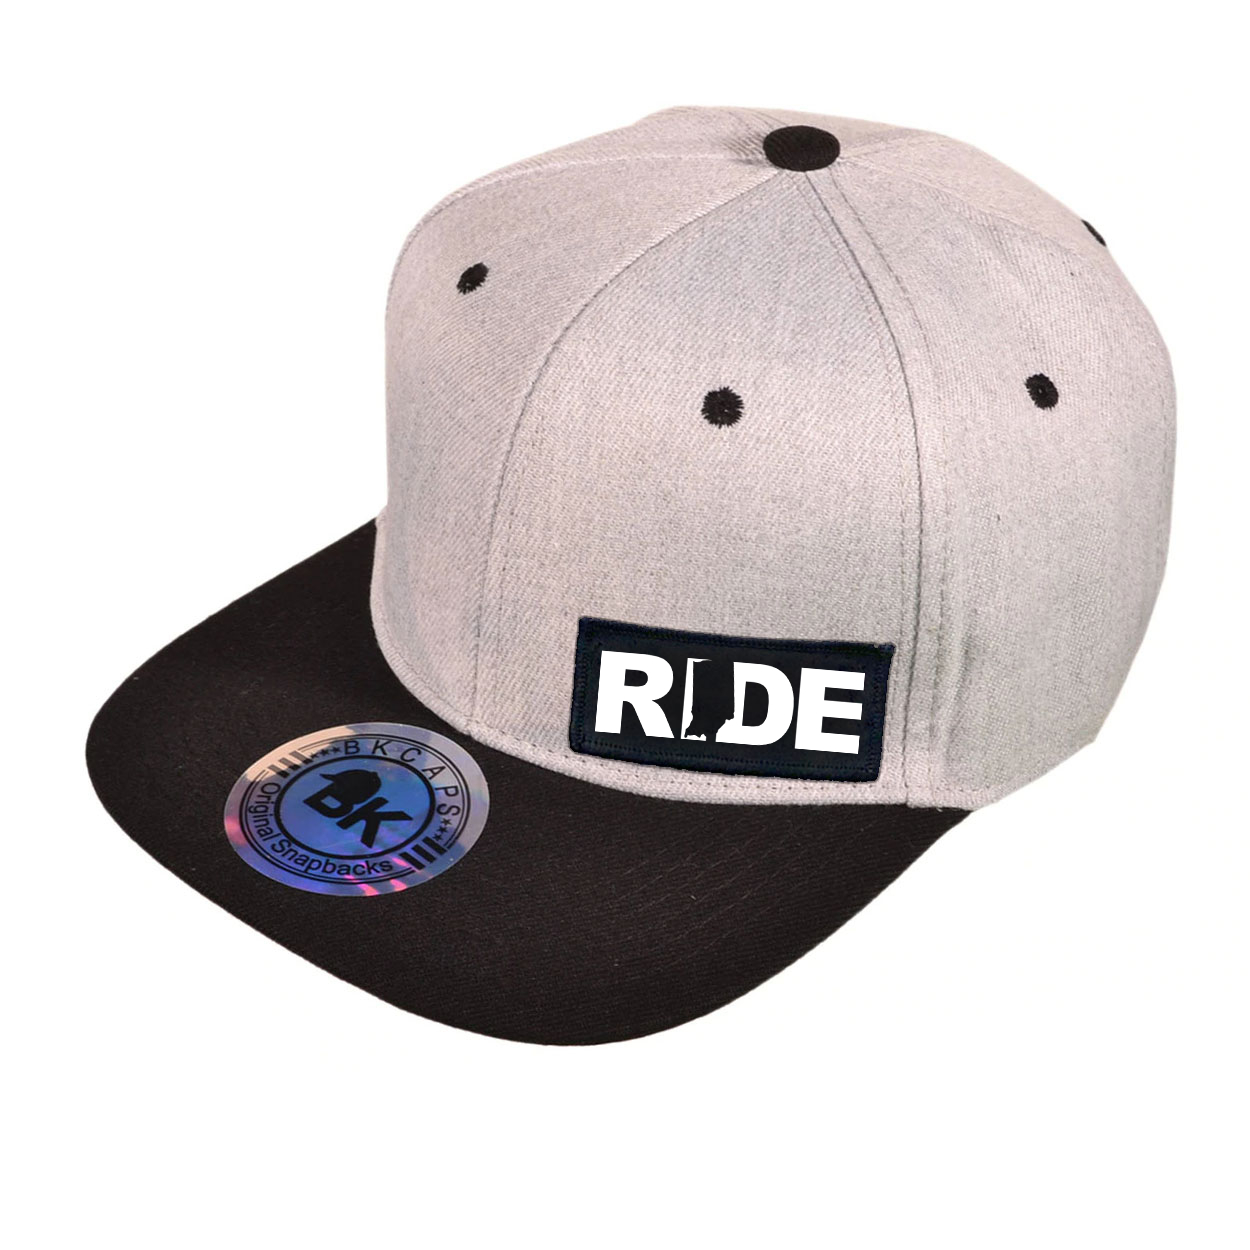 Ride Indiana Night Out Woven Patch Snapback Flat Brim Hat Heather Gray/Black (White Logo)